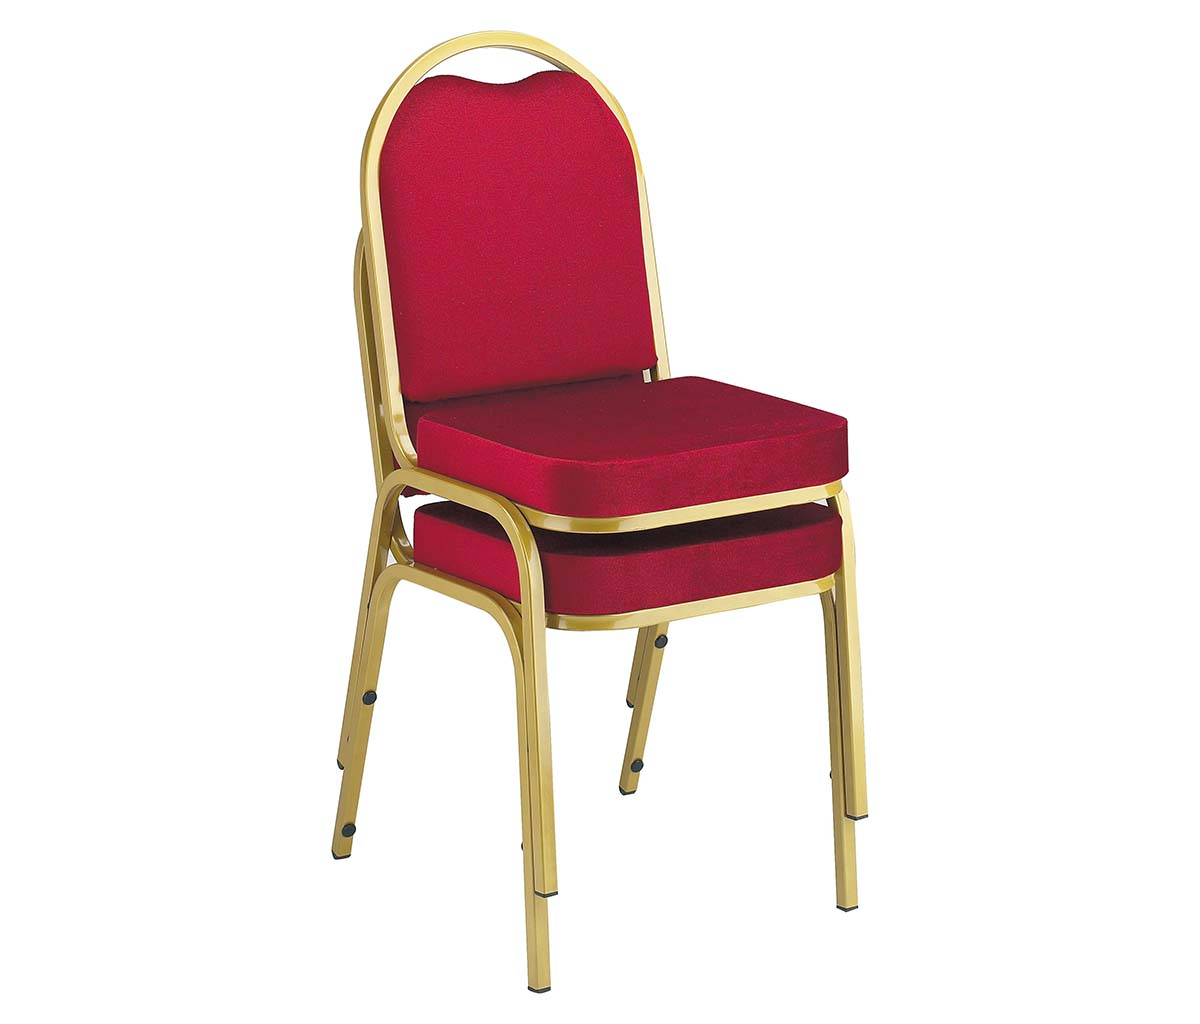 Chaise Victoria Chaise Empilable Non Feu Victoria Chaisor The French